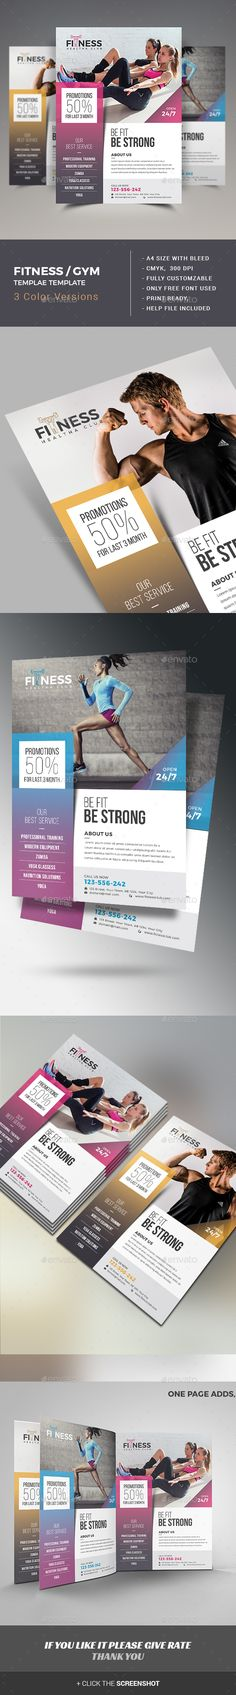 Business Promotion Food Catering  Flyer Template Catering And